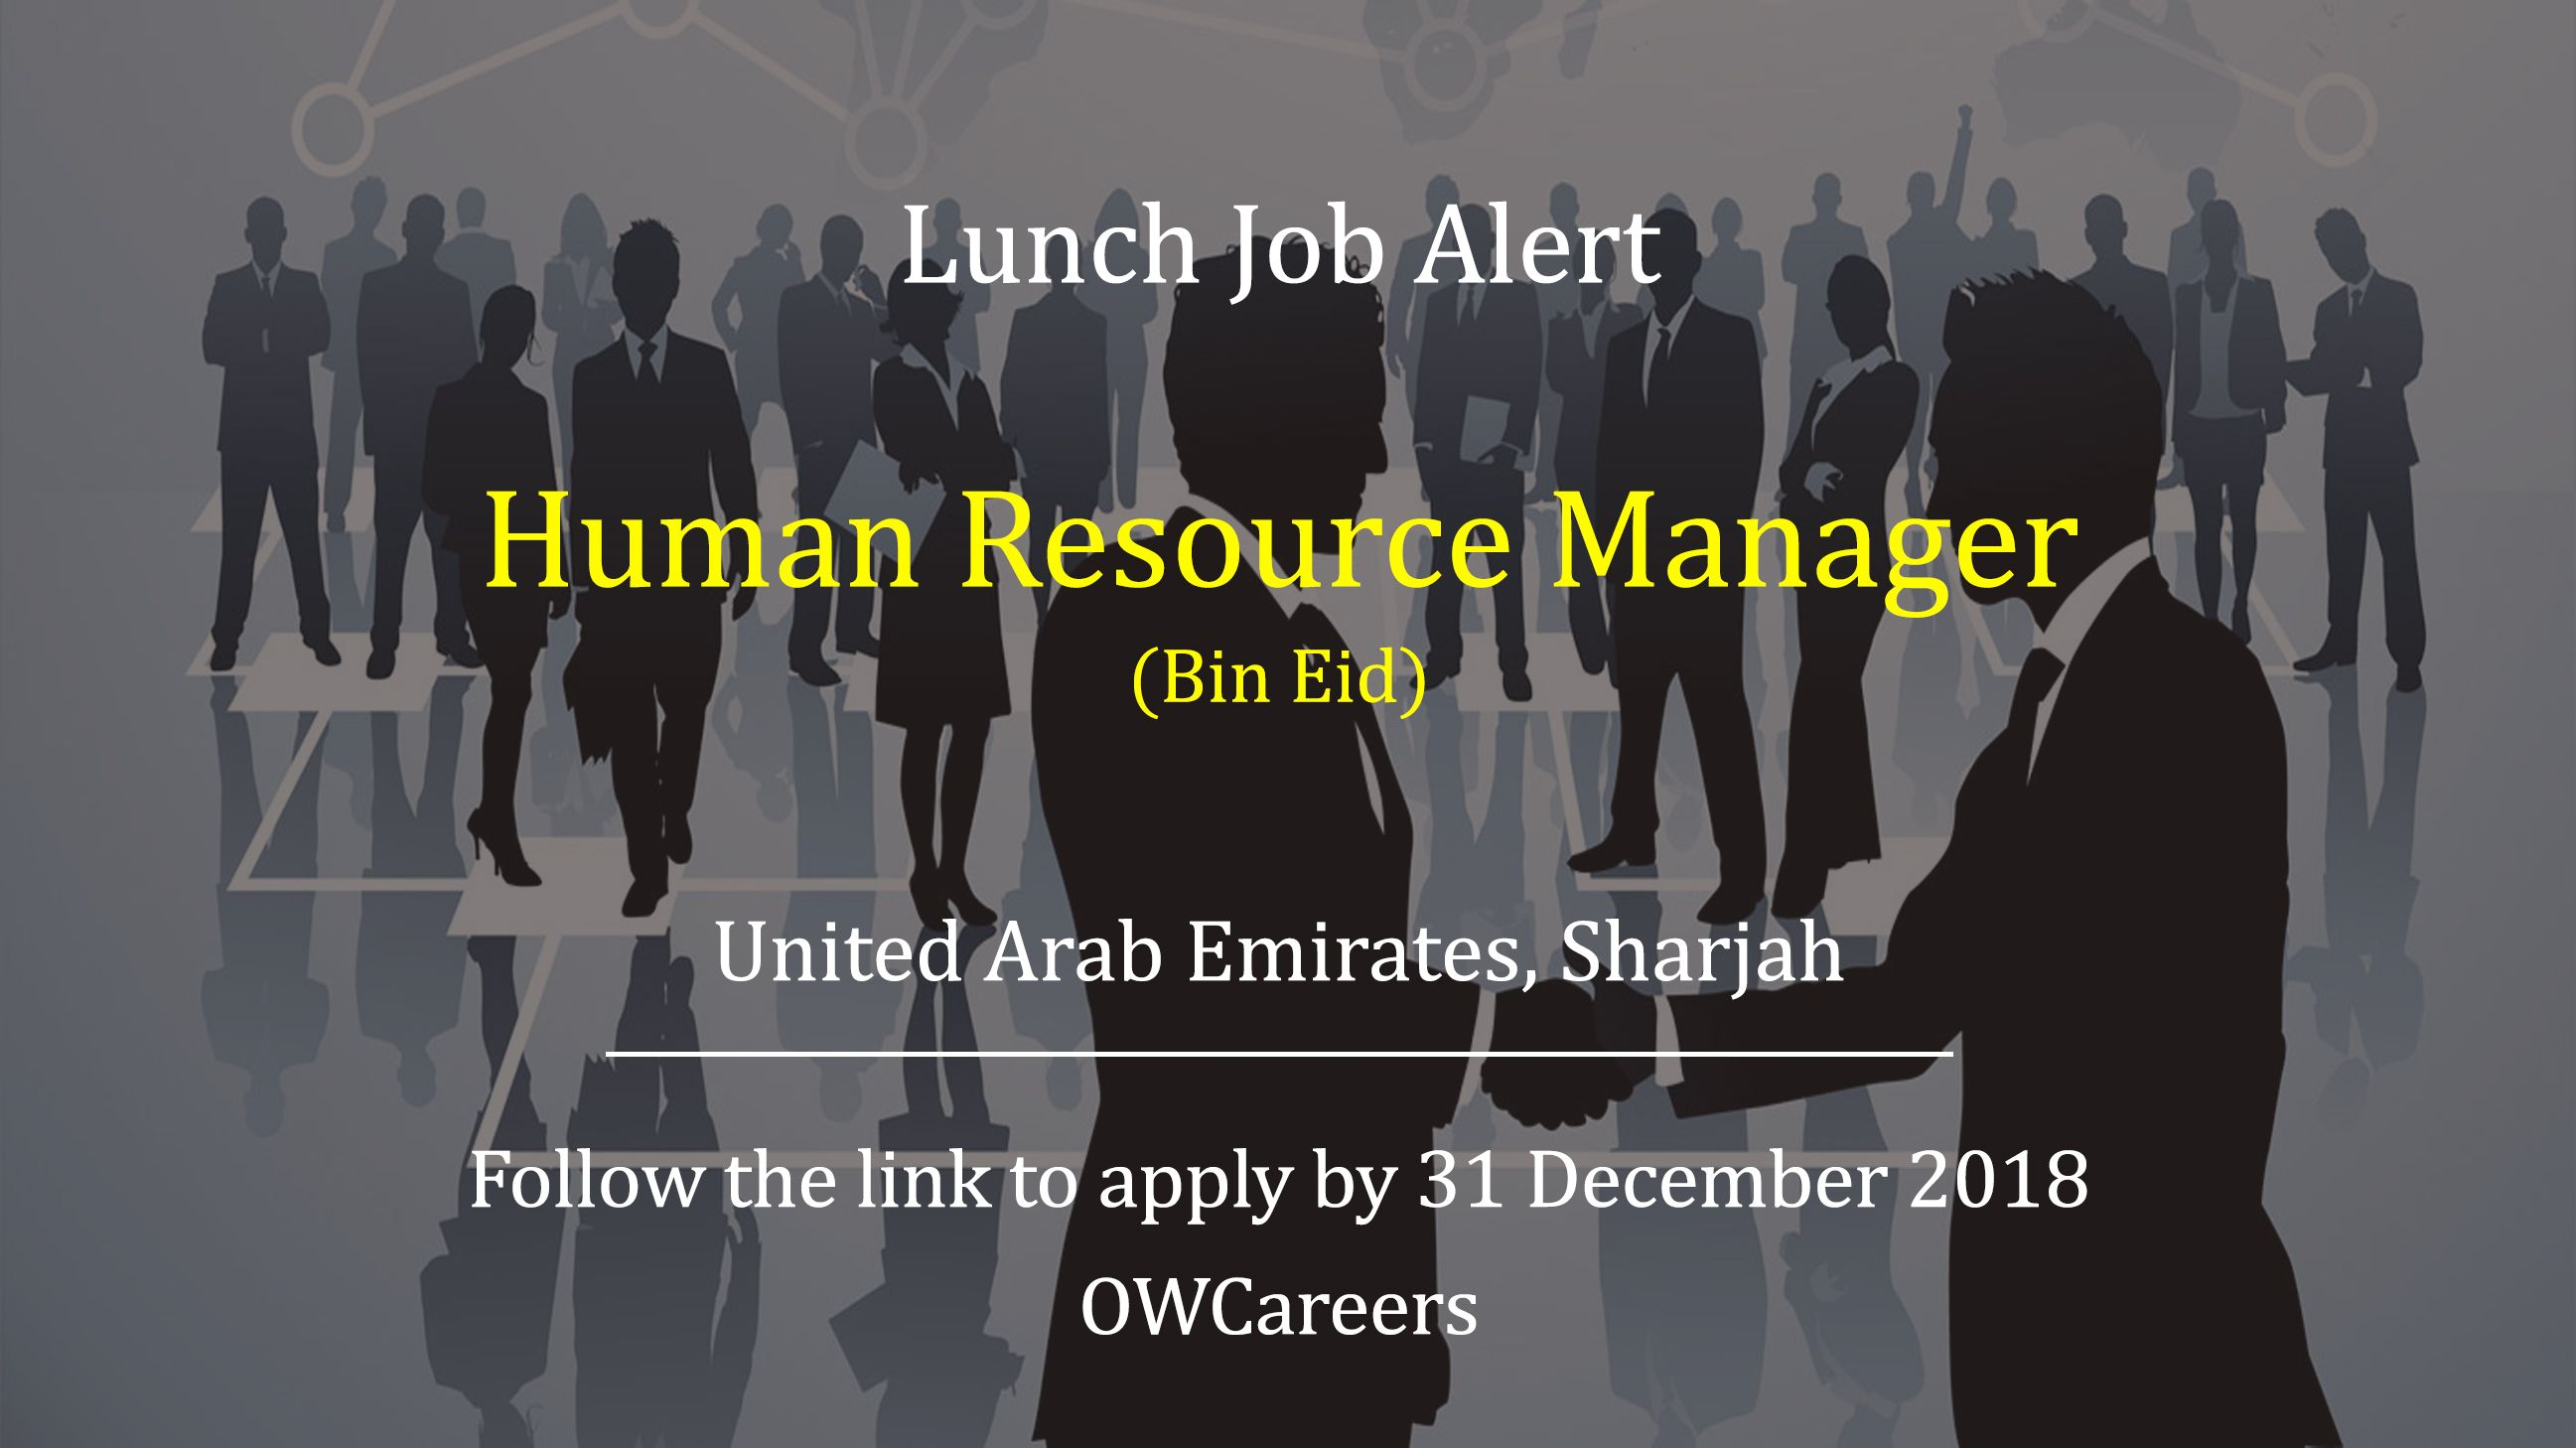 Human Resource Manager Job is available with Bin Eid in